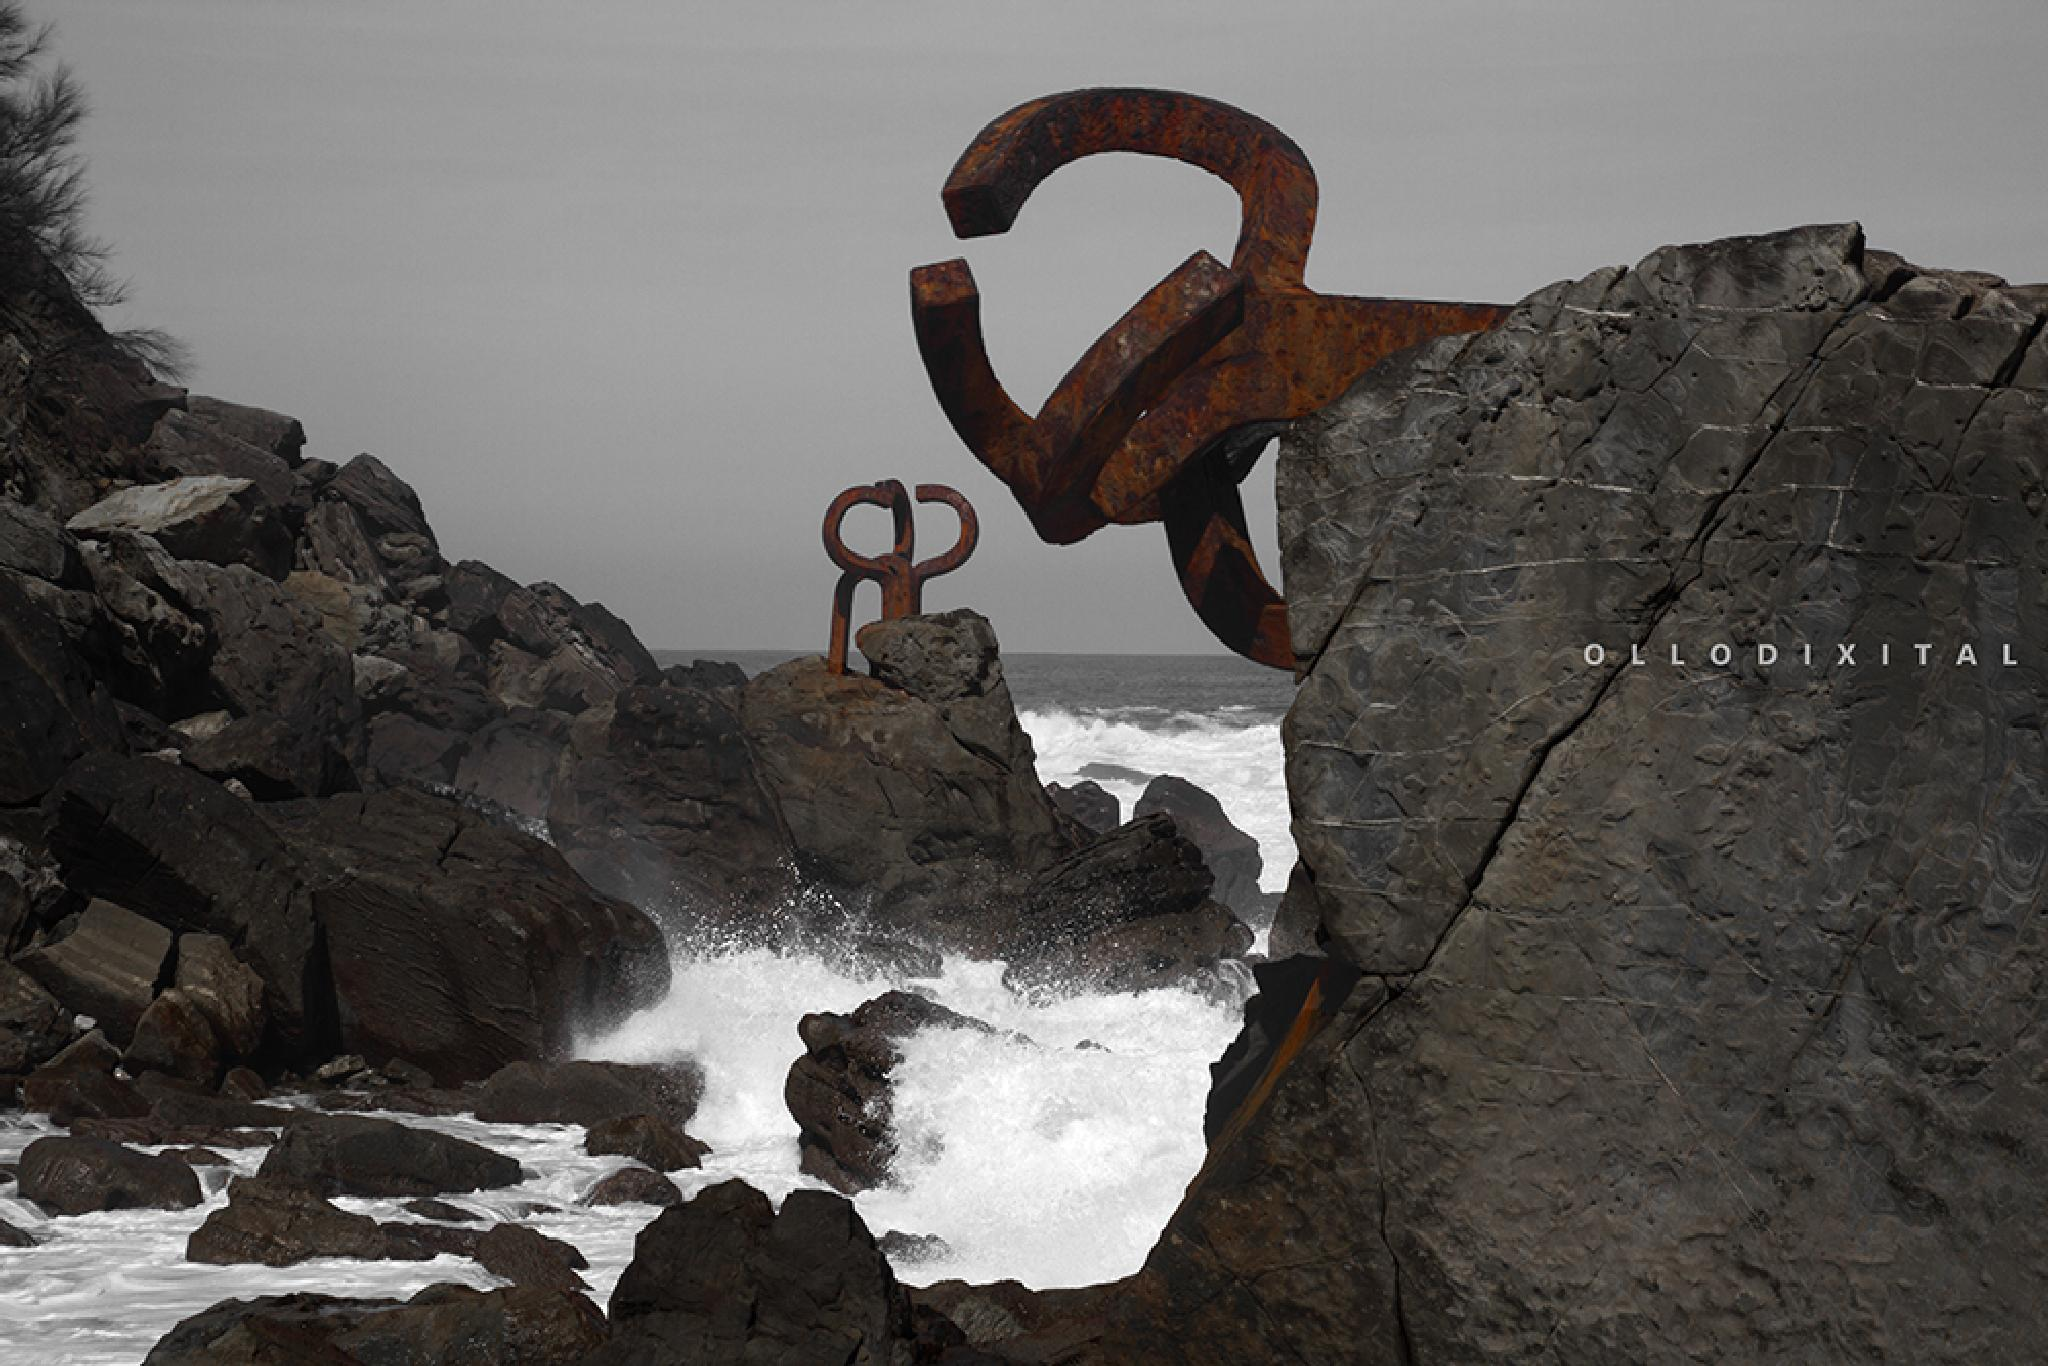 Donostia: Comb of the Winds by OlloDixital